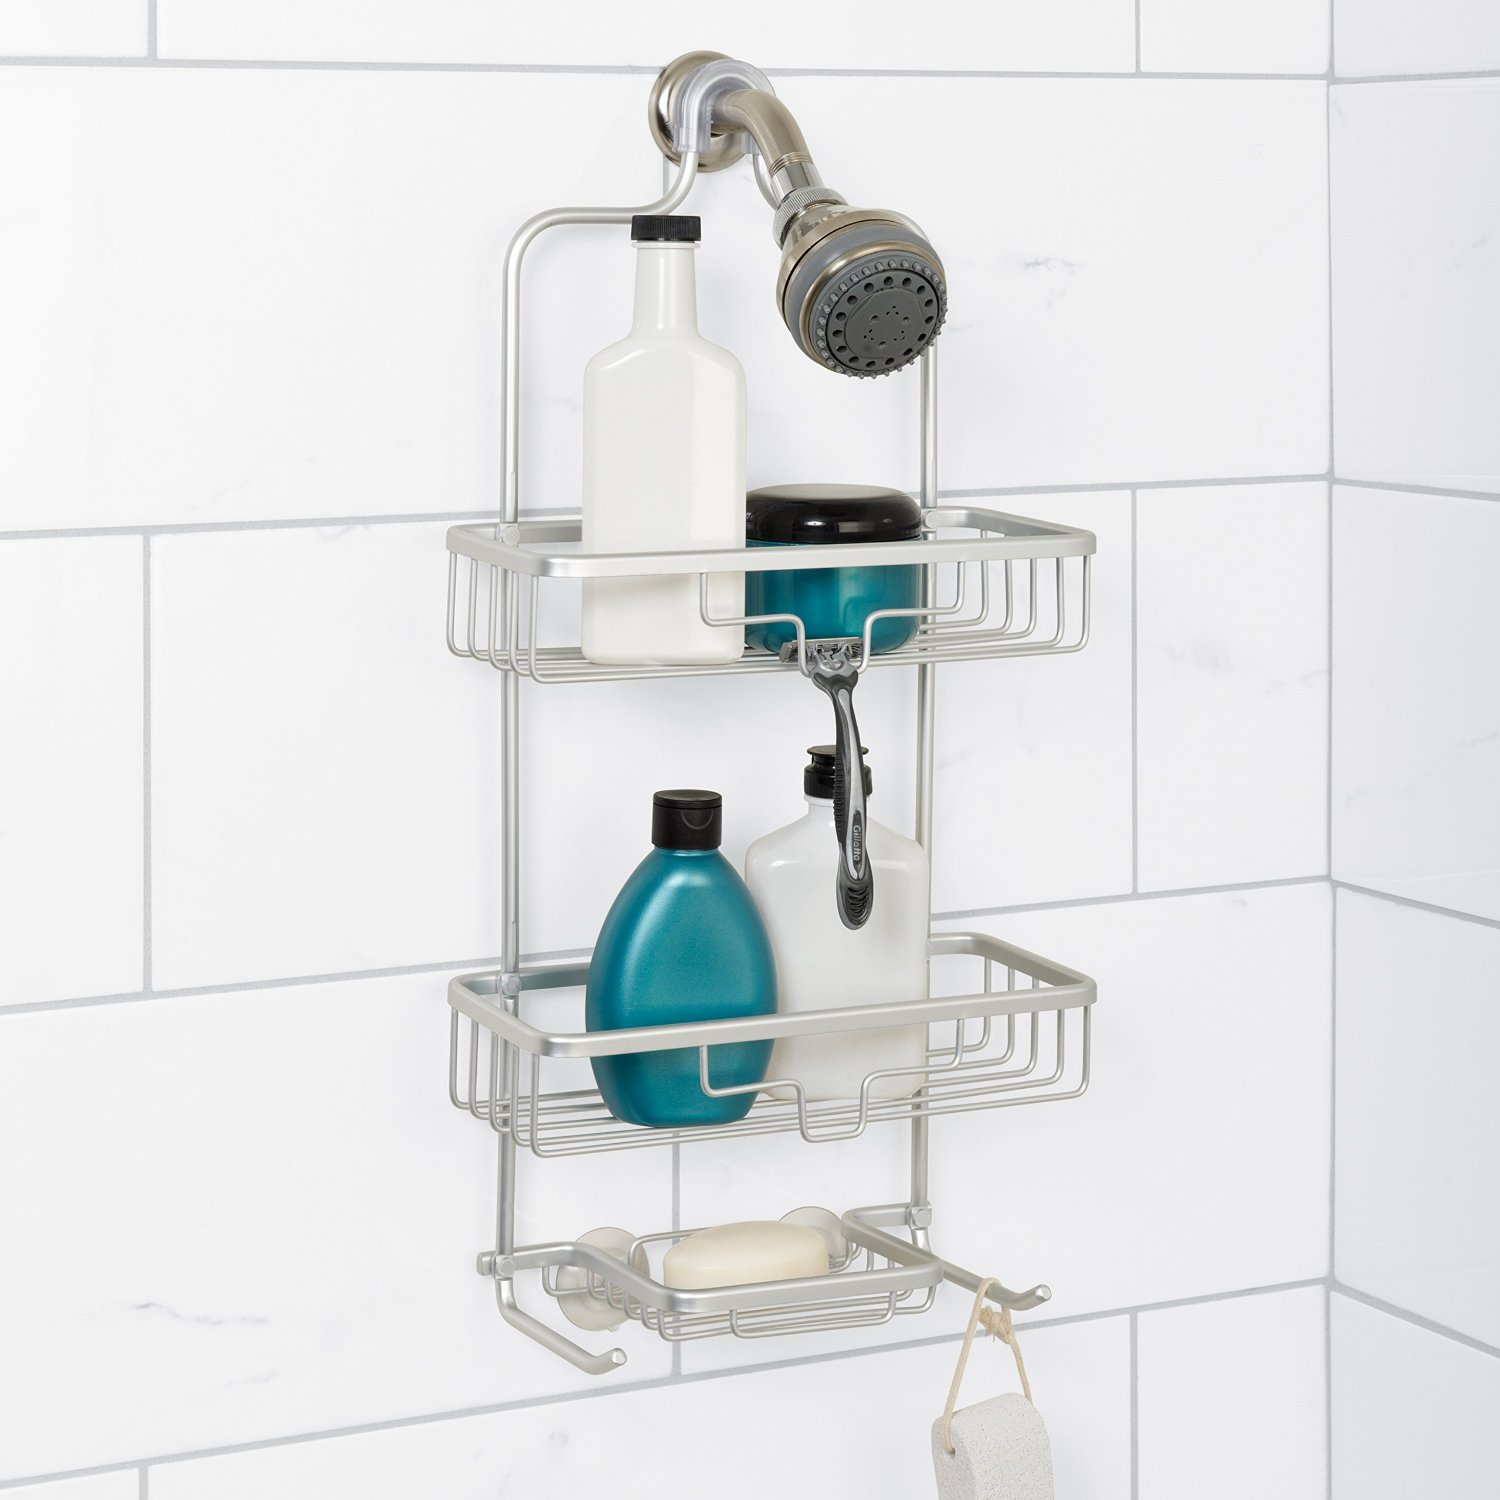 Zenna-Over-the-Showerhead-Shower-Caddy